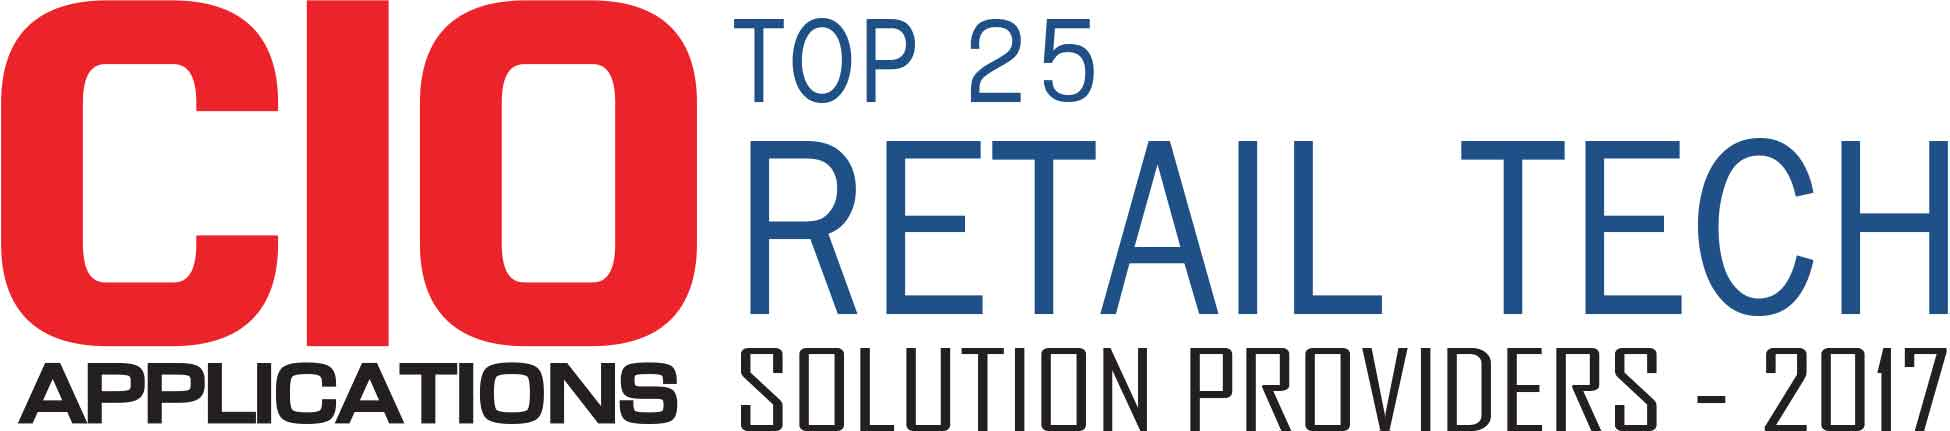 Top 25 Retail Technology Solution Companies - 2017